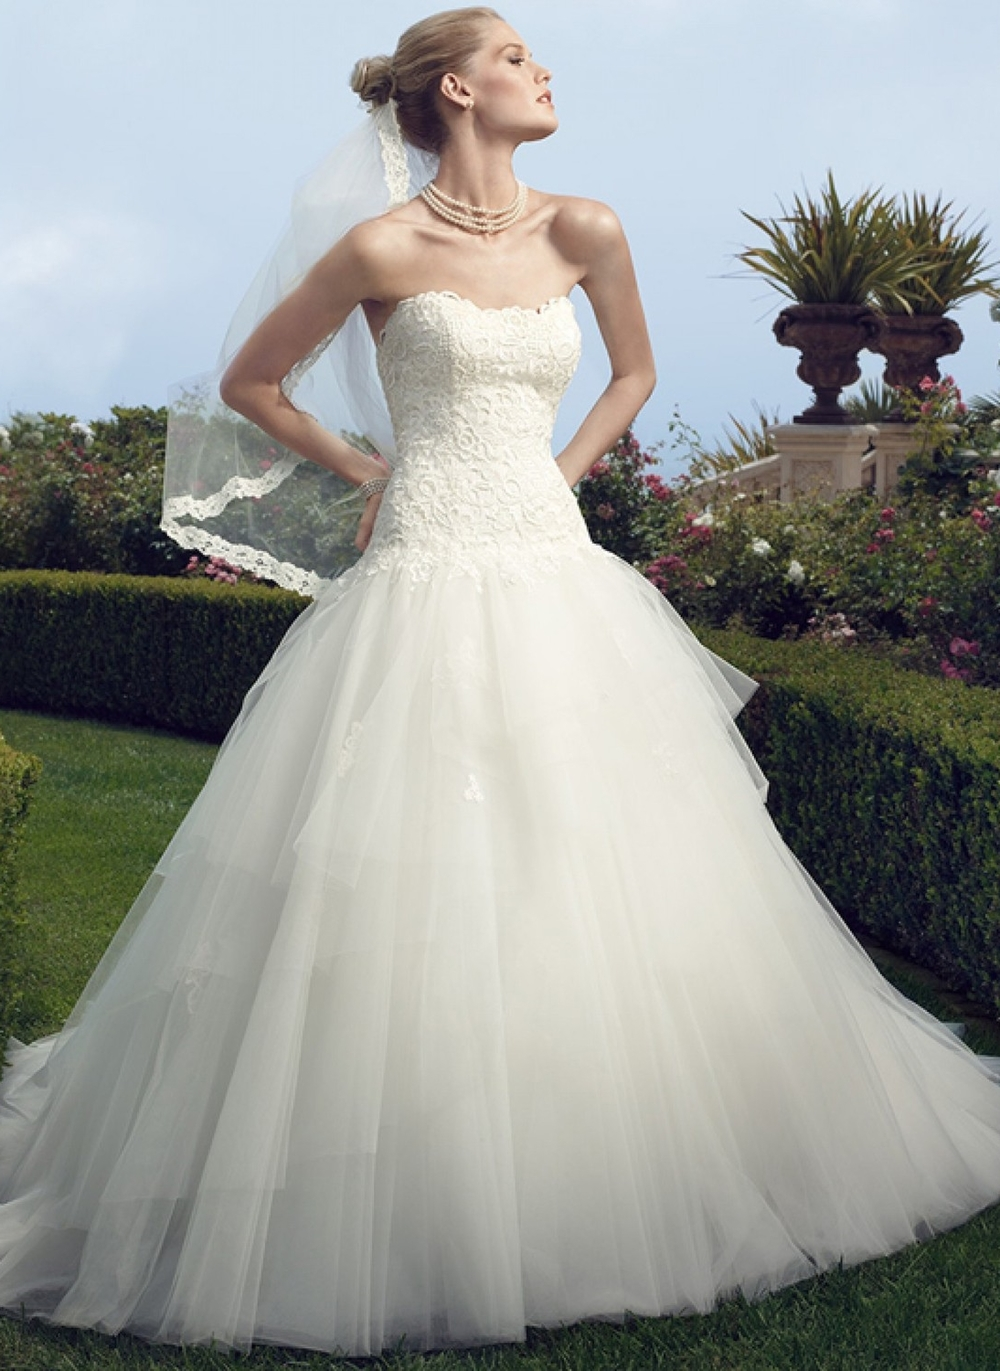 Casablanca Trunk Show – August 29-31, 2014 at Ellie's Bridal Boutique (Alexandria, VA)